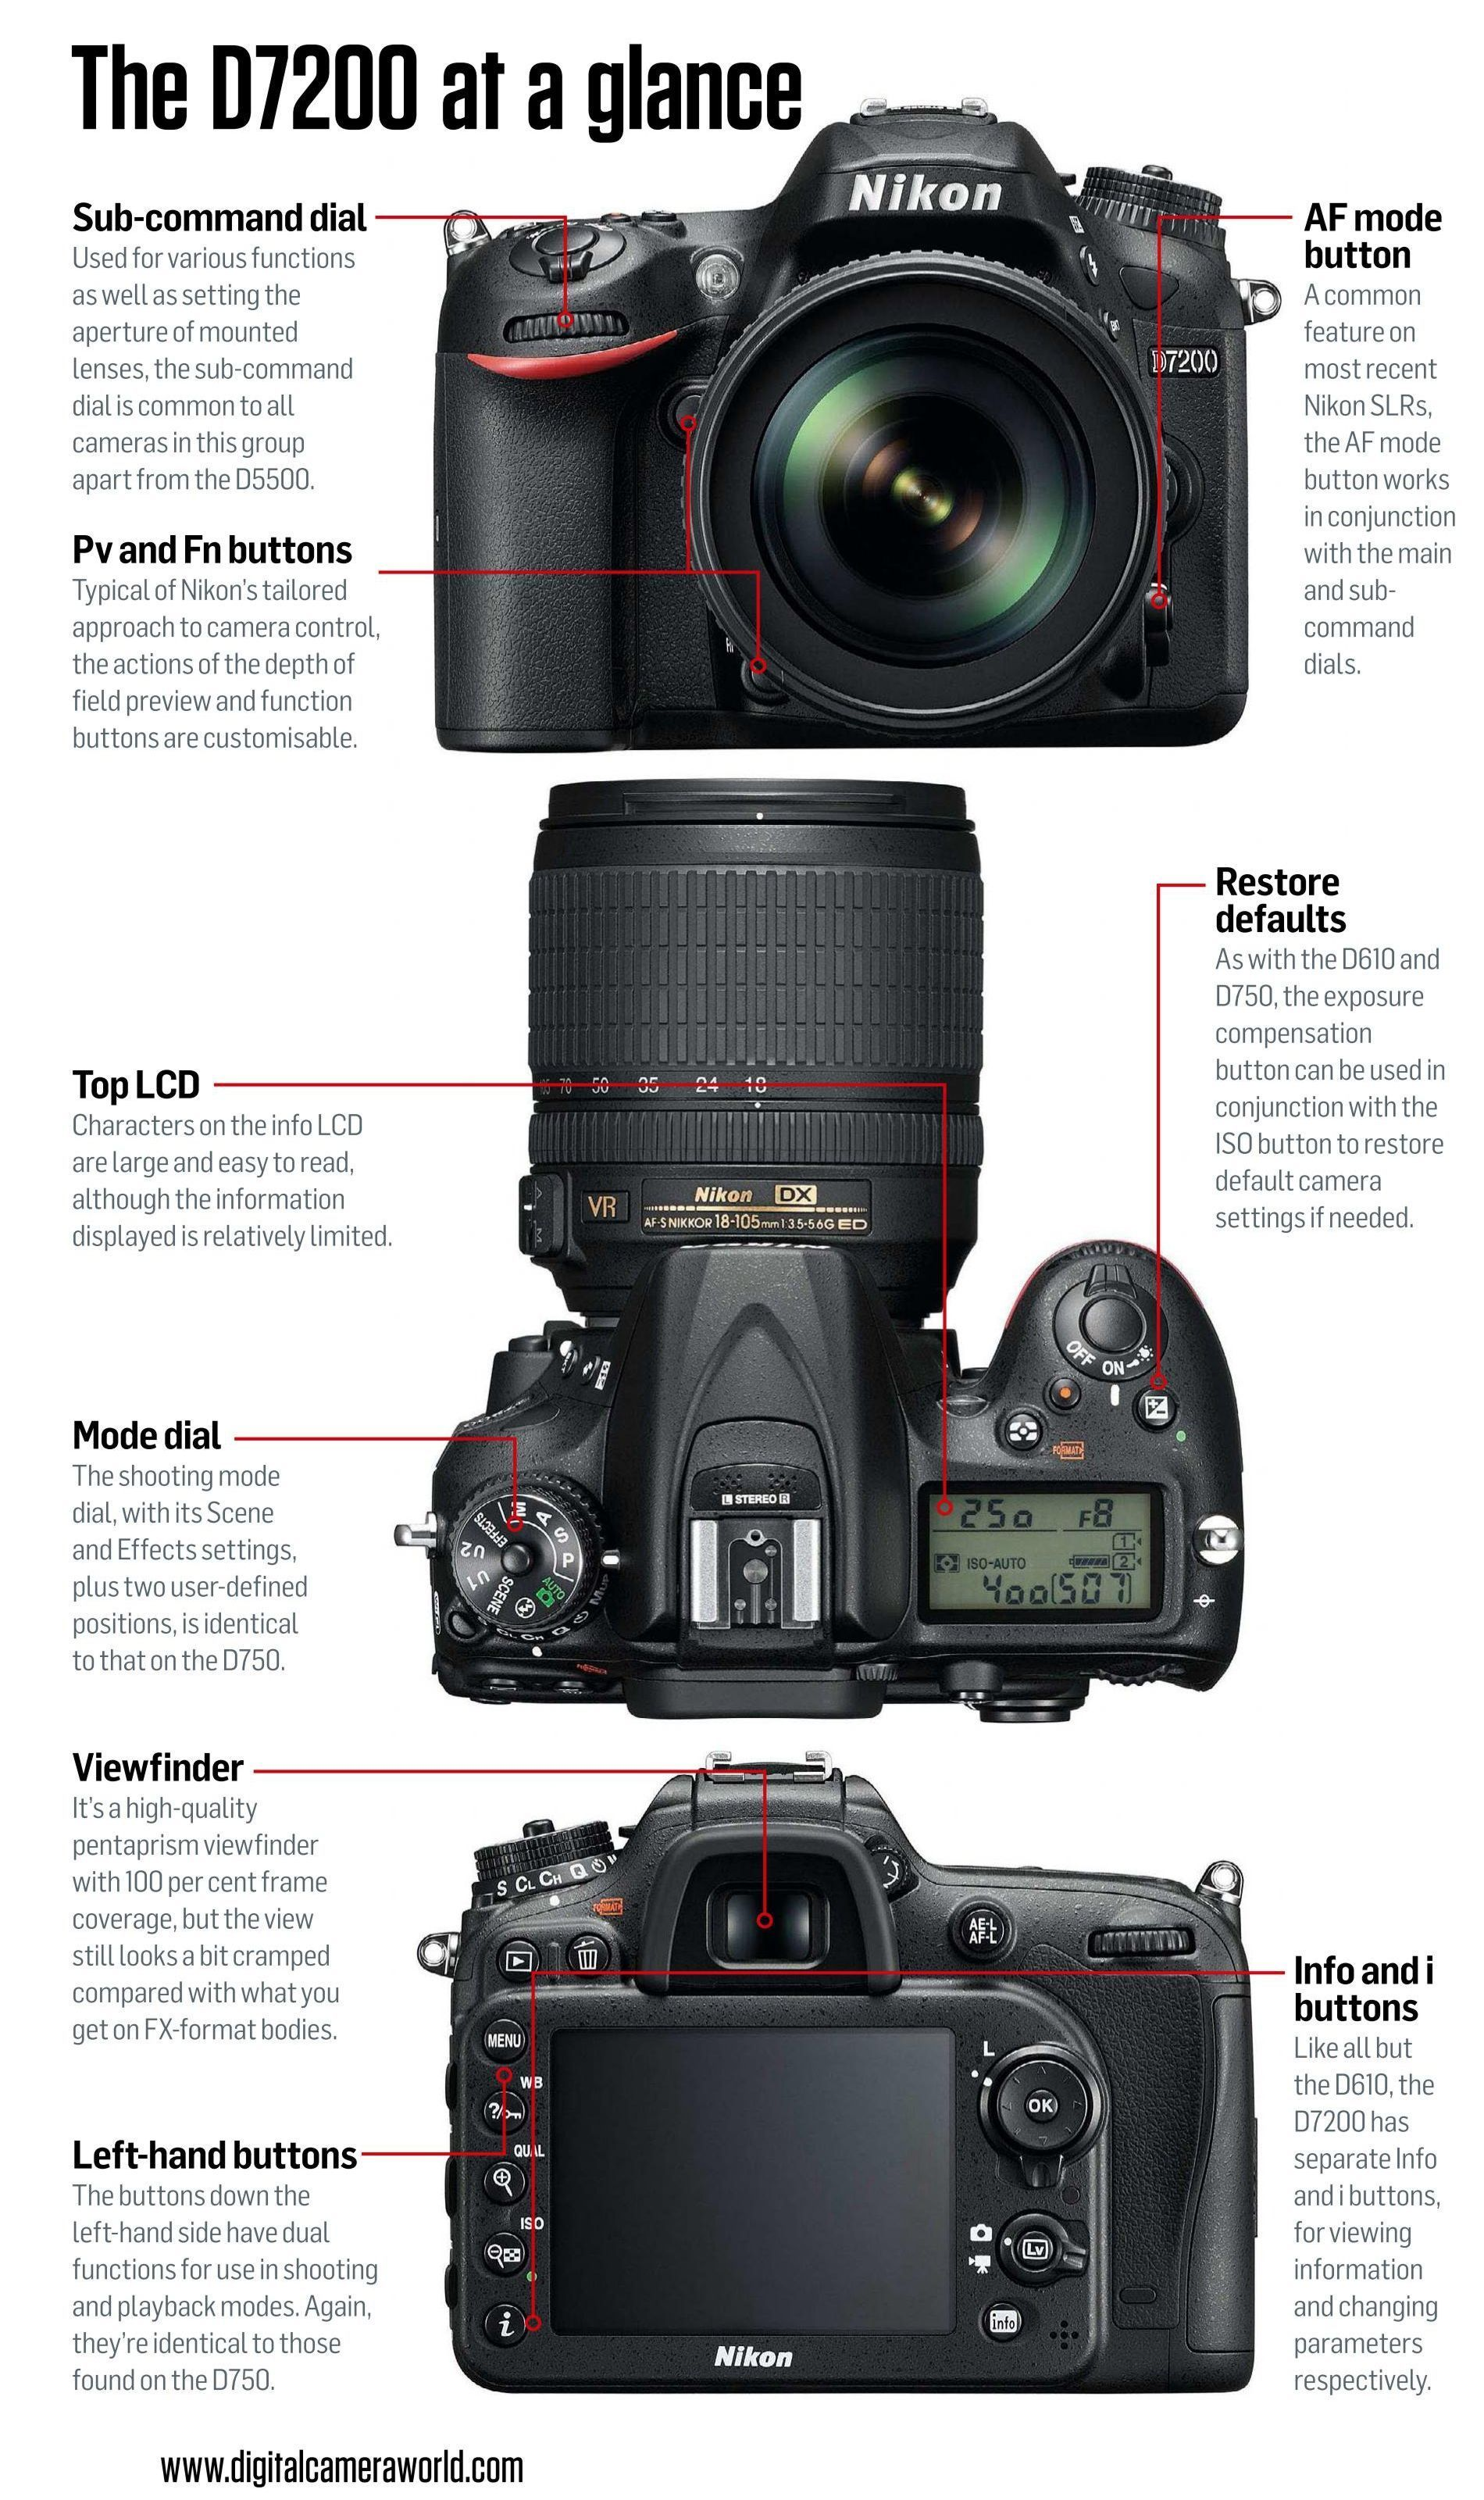 Nikon D7200 Tips. N-Photo 10-2015 Tap The Link Now To Find